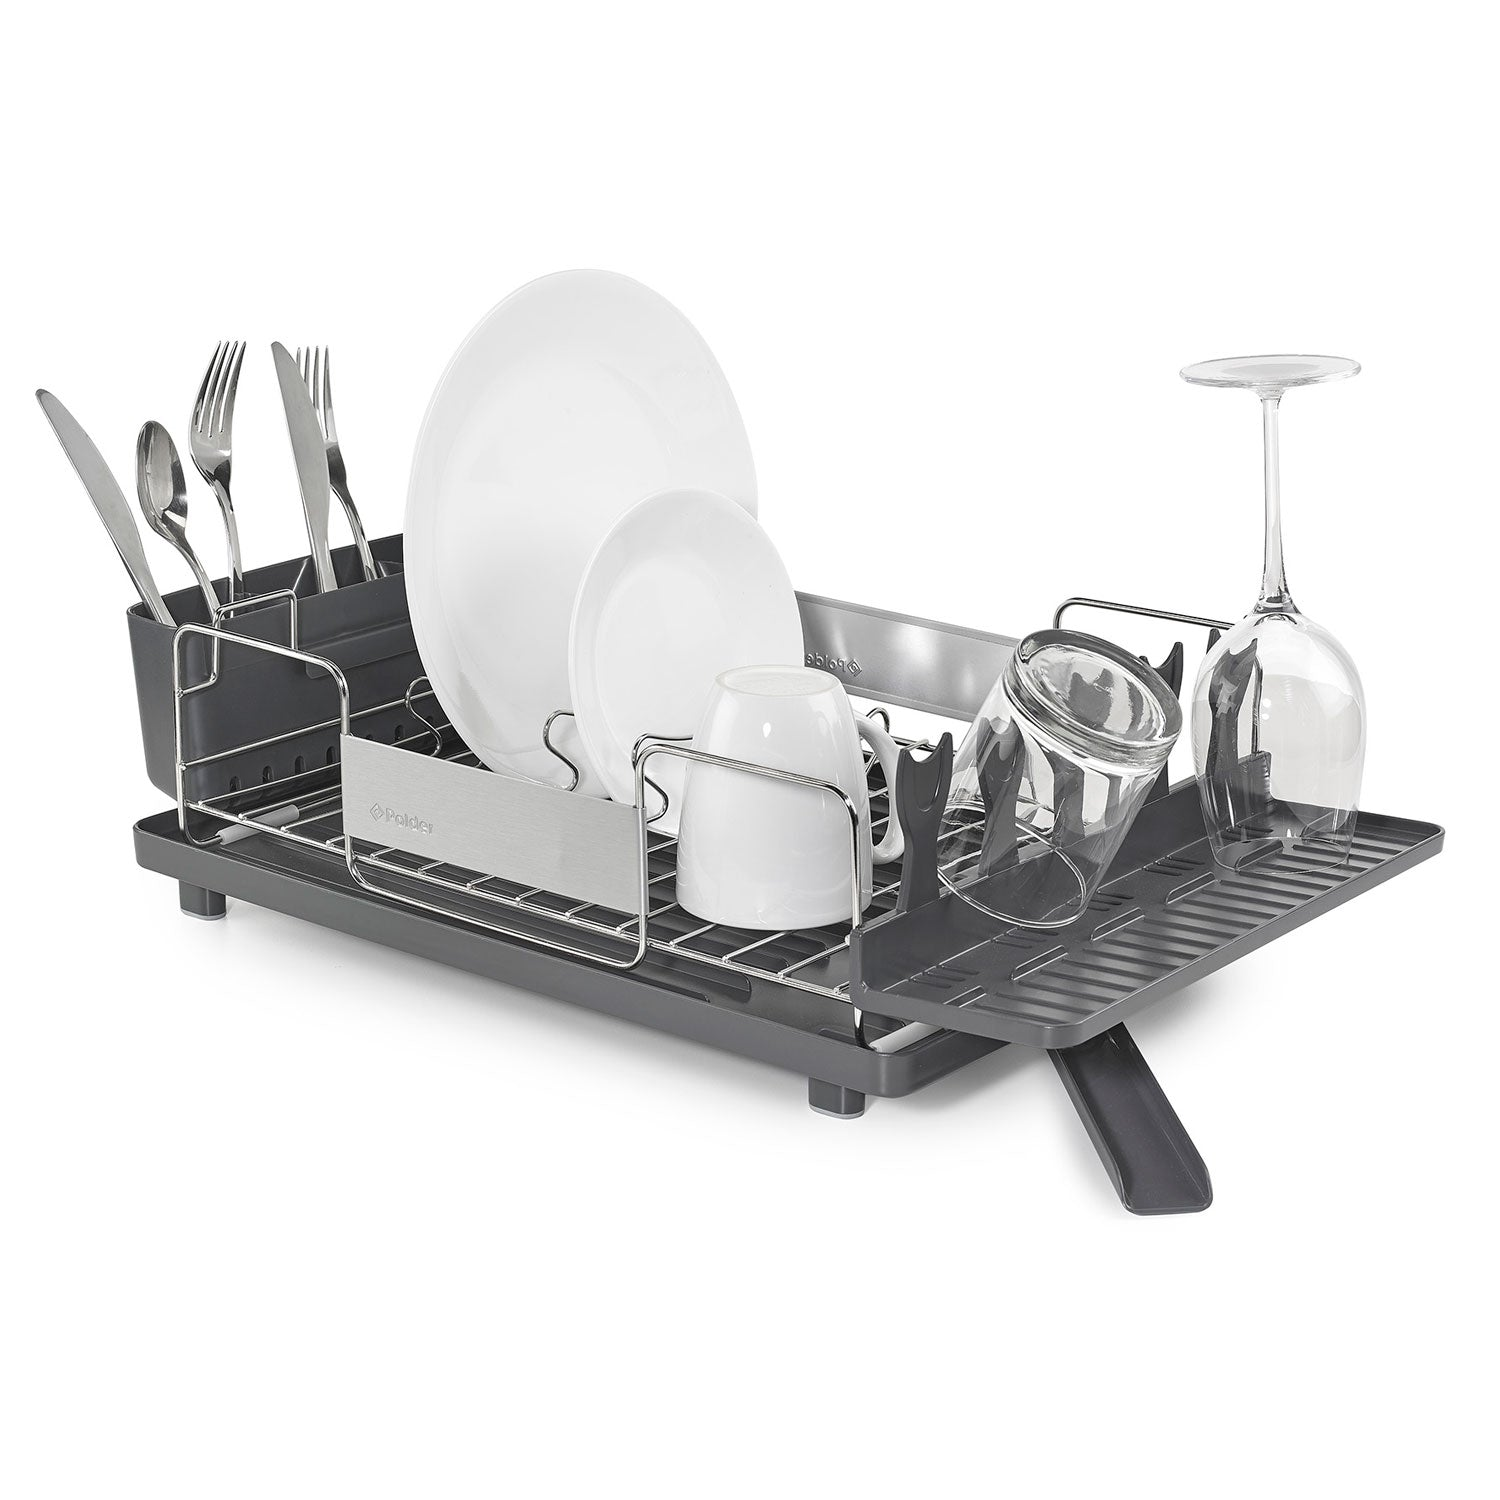 Space-Station Dish Rack